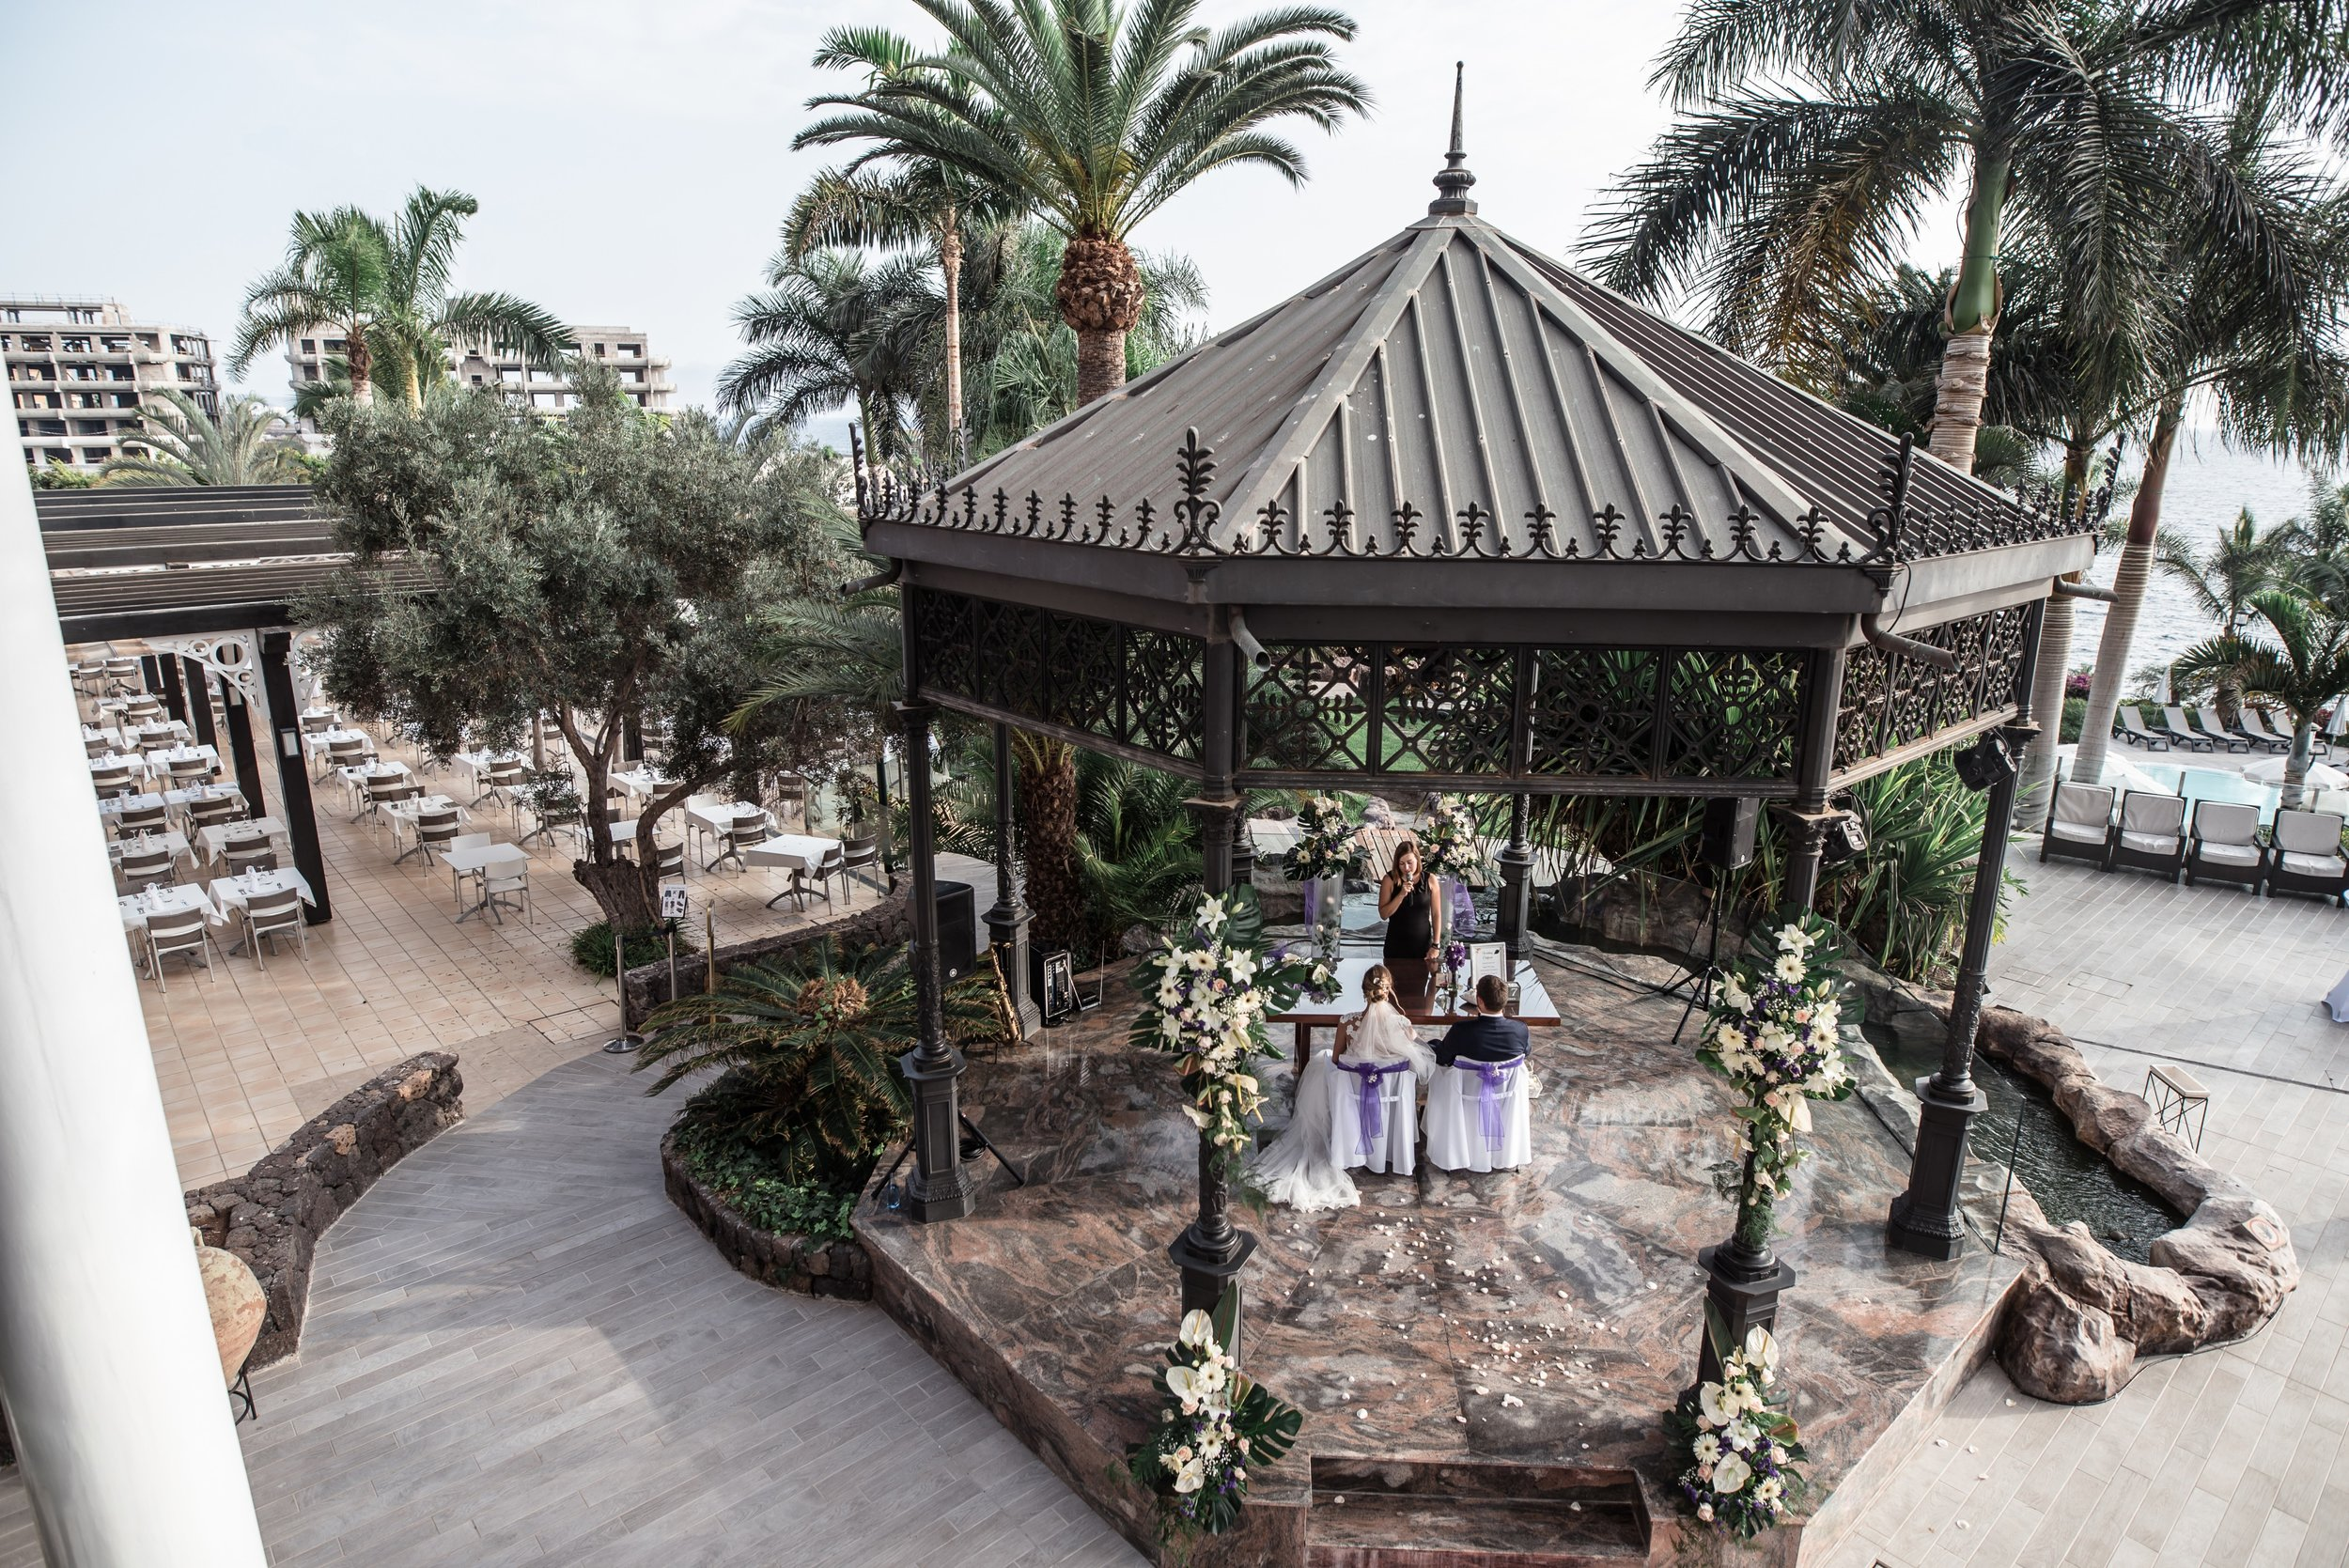 Ceremony place - beautiful gazebo